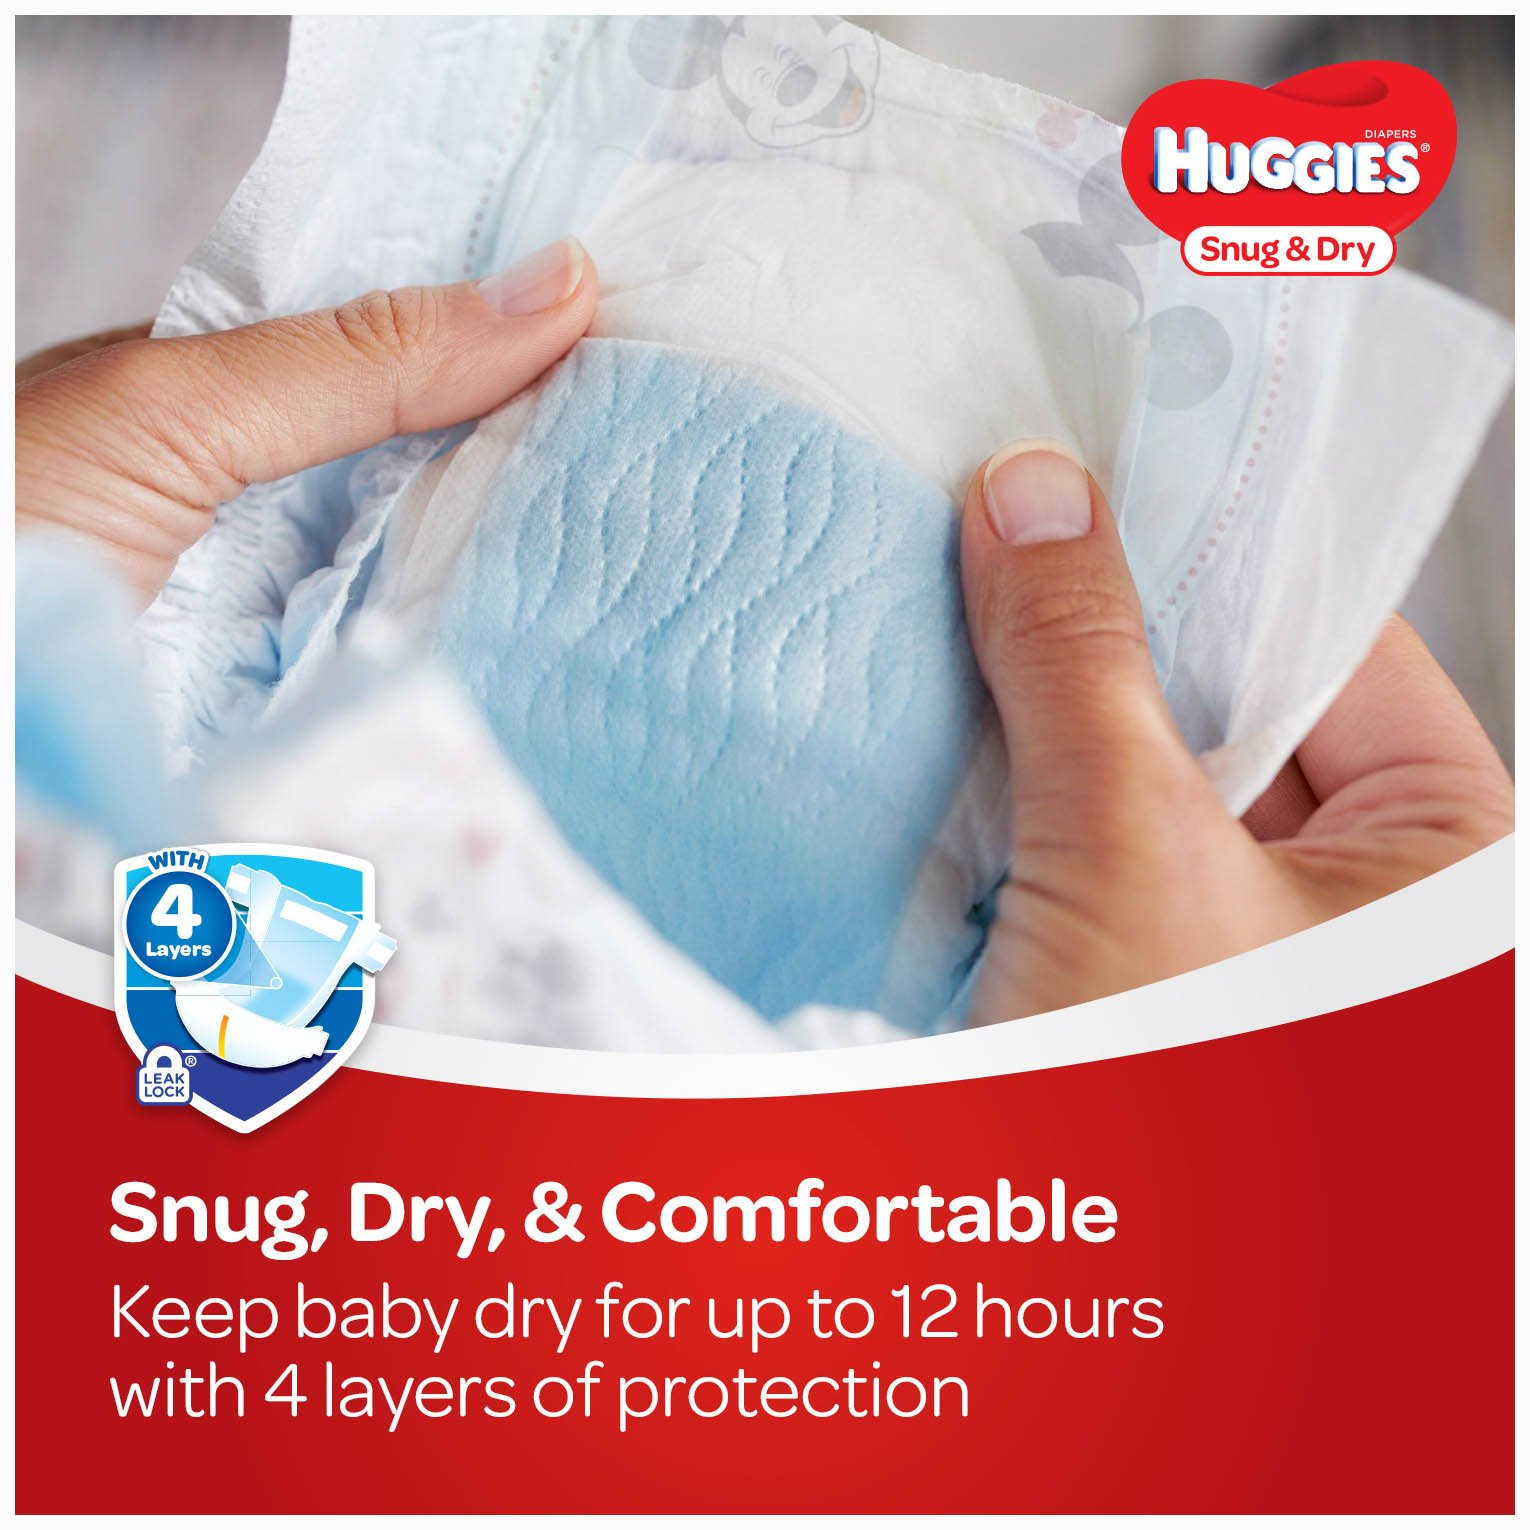 HUGGIES Snug & Dry Diapers, Size 5, 172 Count (Packaging May Vary) by Huggies (Image #4)